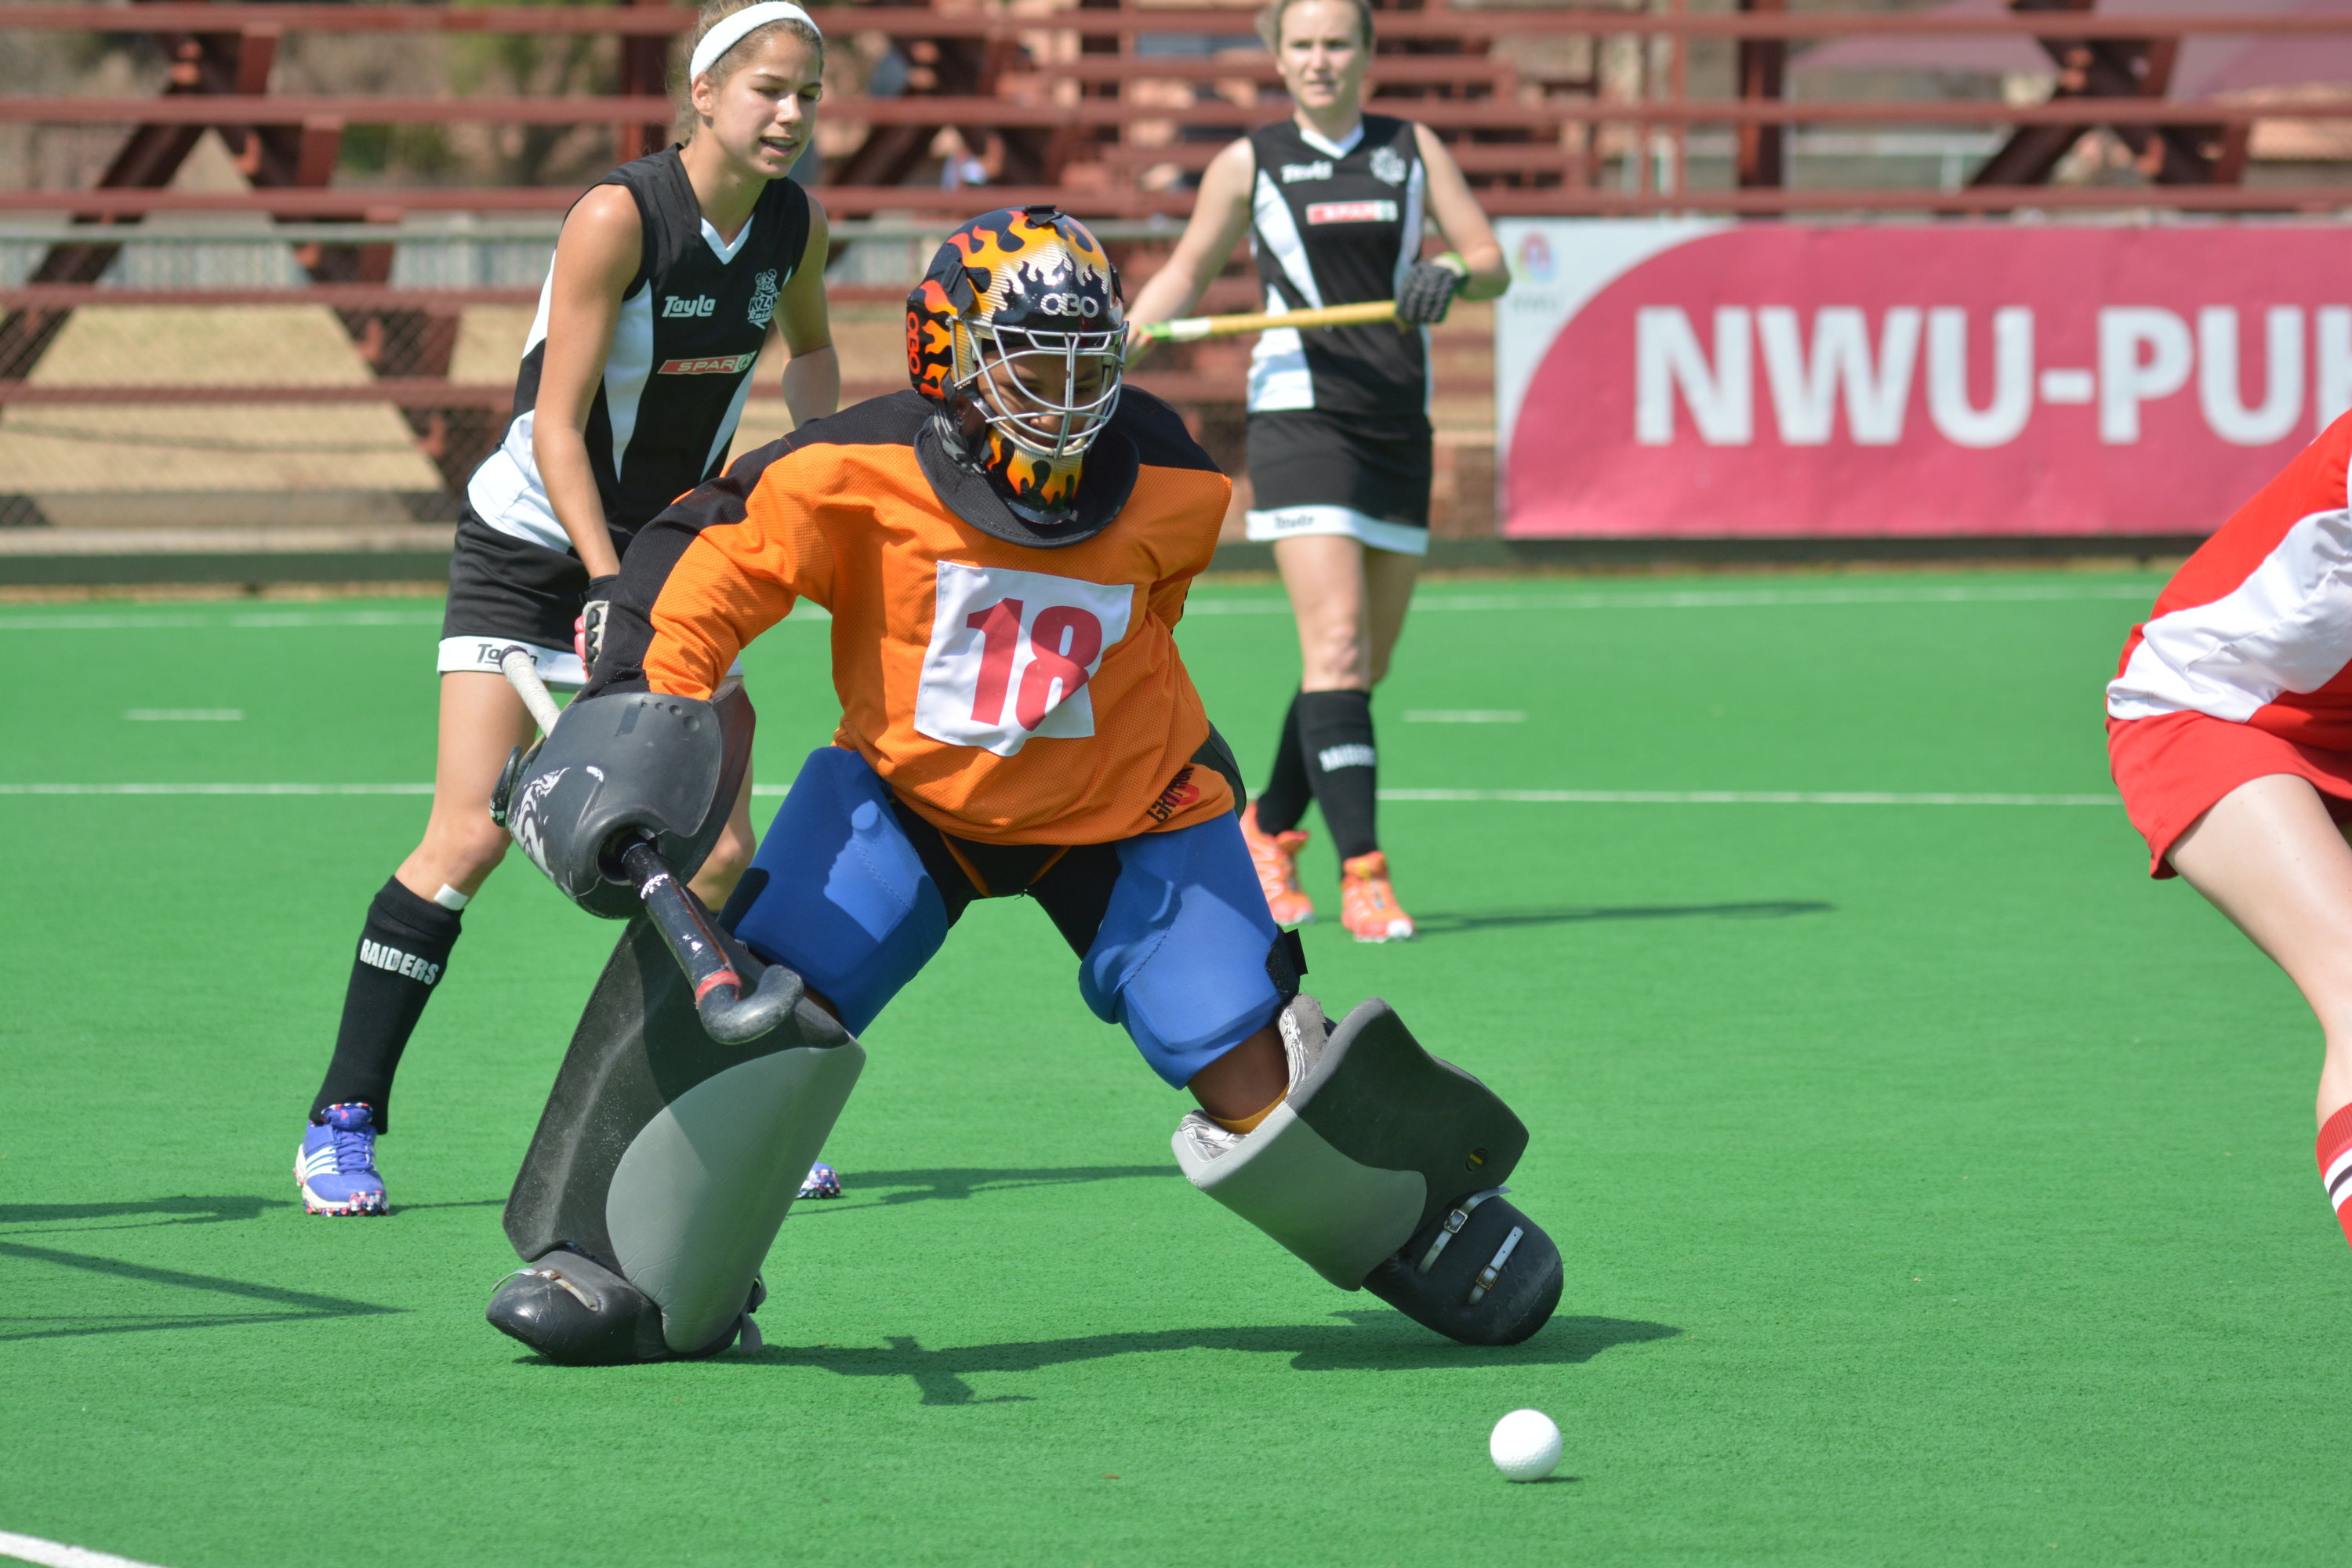 S Gauteng and WP contest IPT women's final